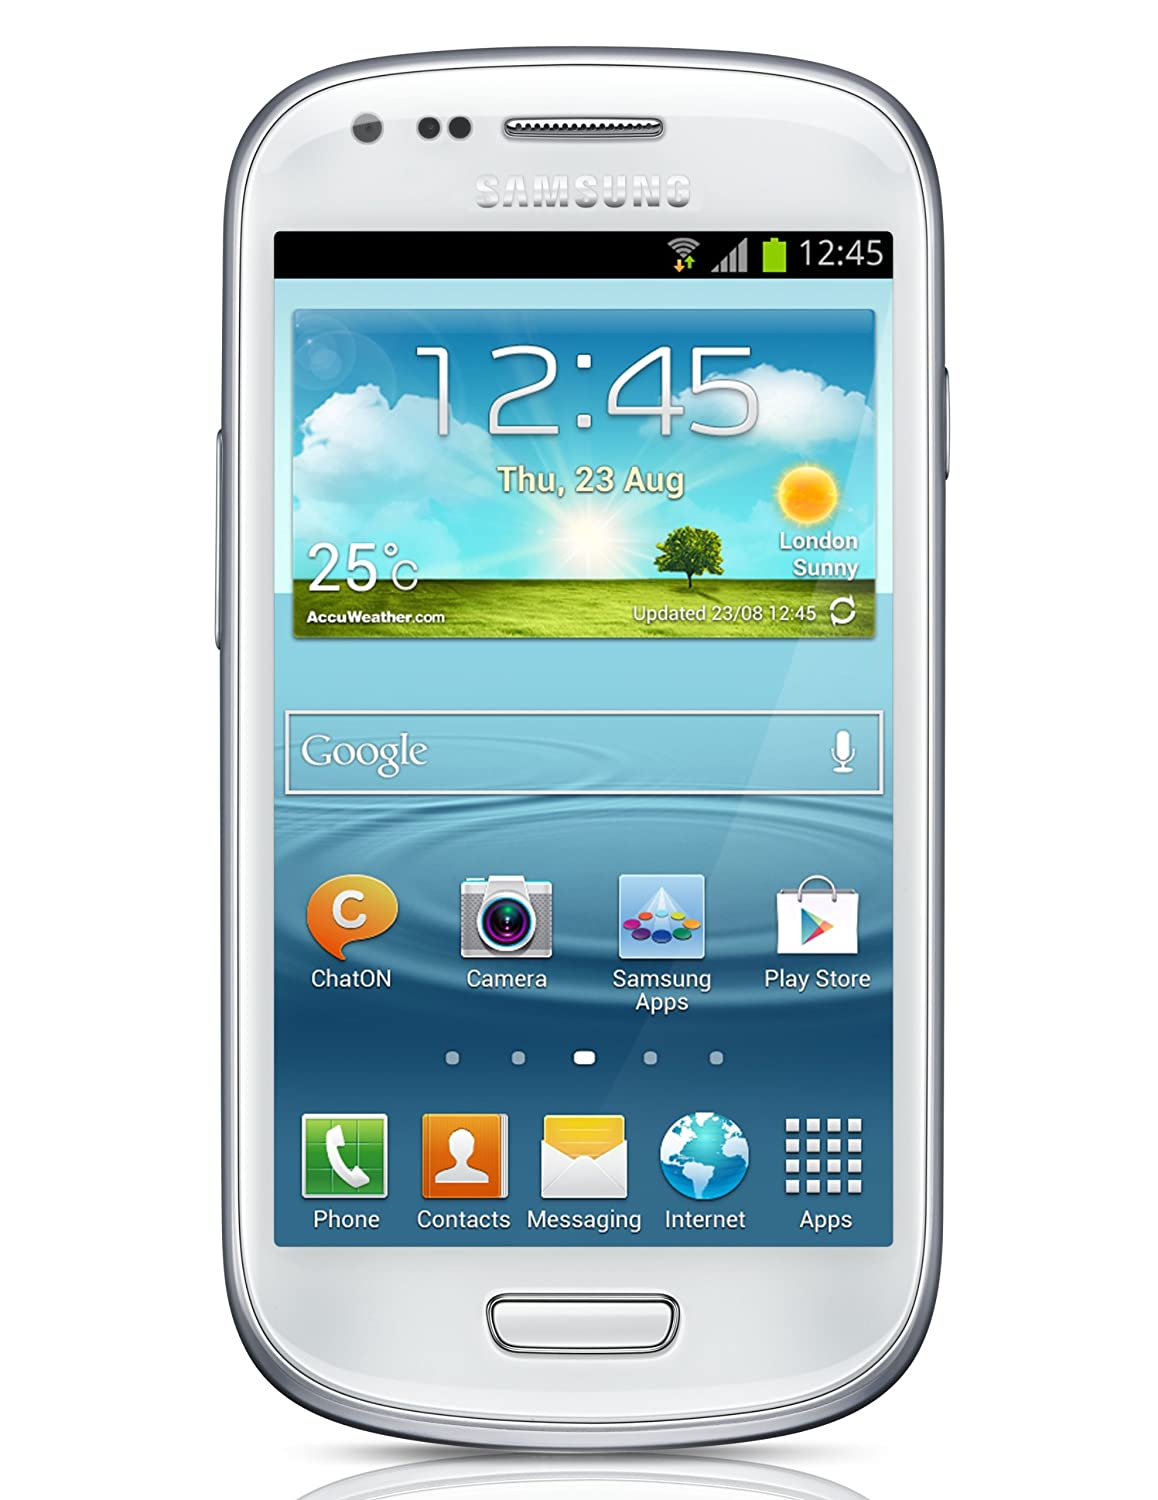 Samsung Galaxy S Iii Mini I8190 8gb Unlocked Gsm Phone With Android 4 1 Os Dual Core Super Amoled Touchscreen 5mp Camera Gps Nfc Wi Fi Bluetooth